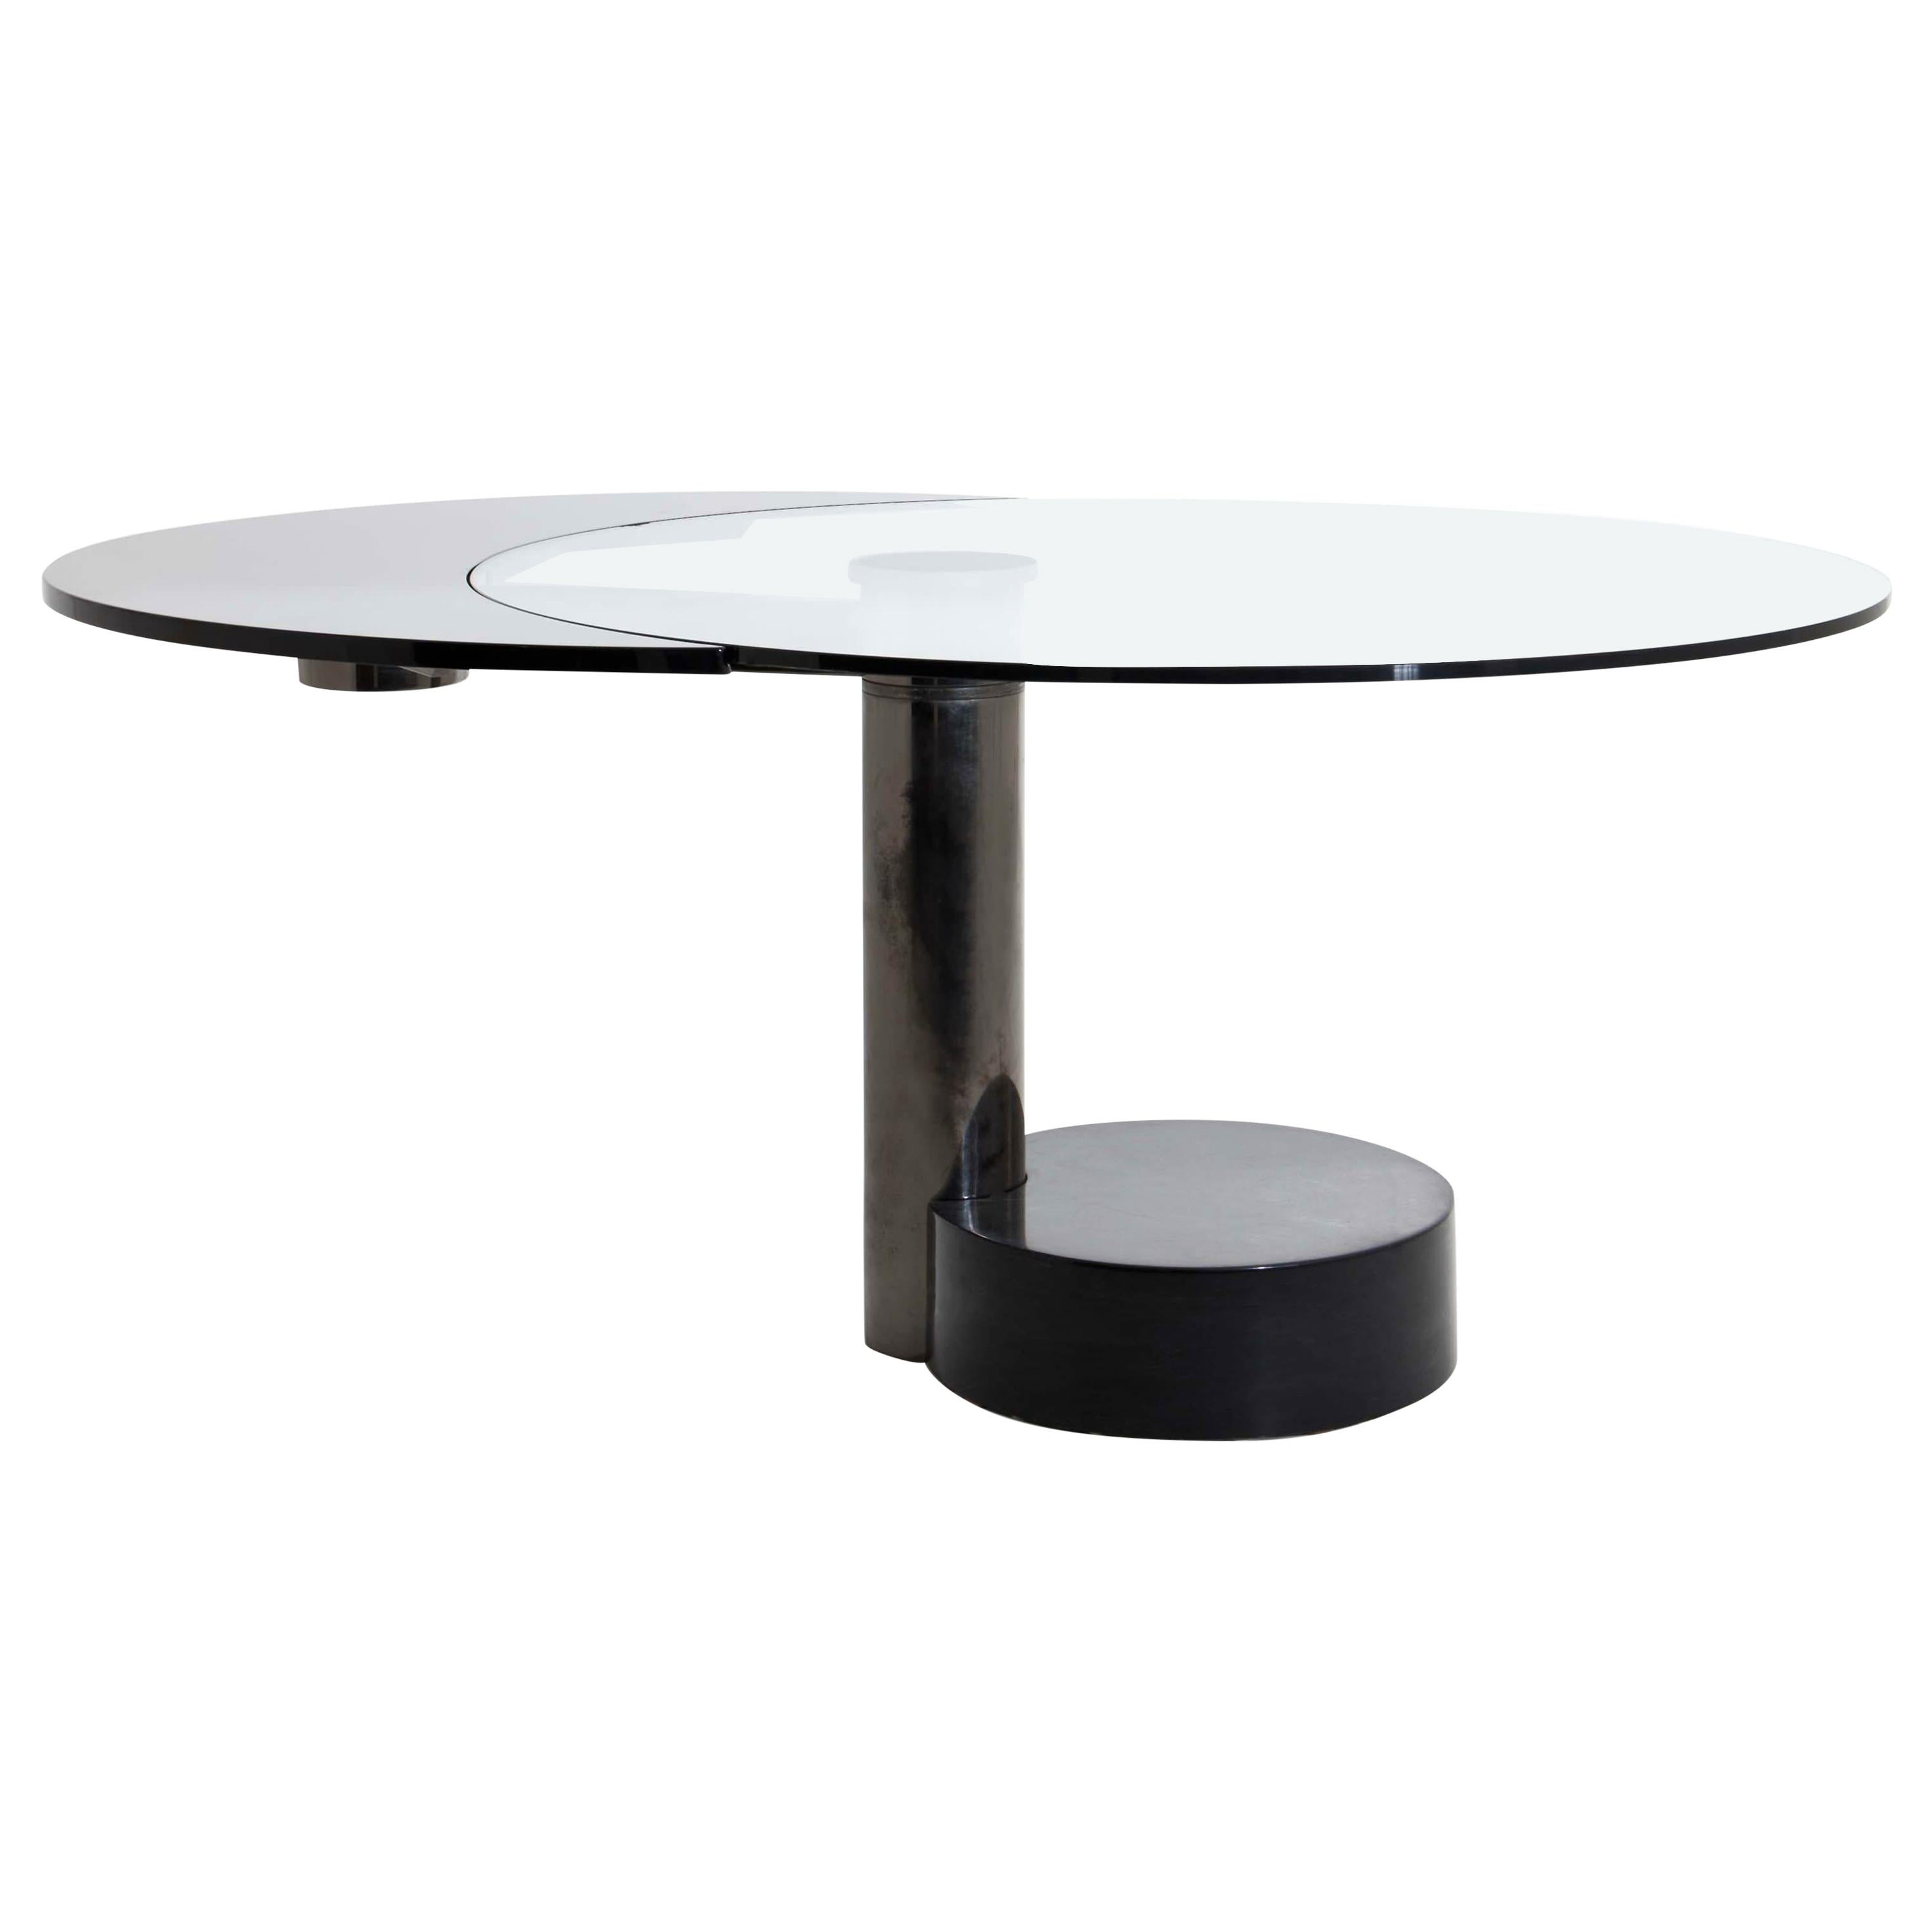 Pierre Cardin Dining Table, France, 1960s